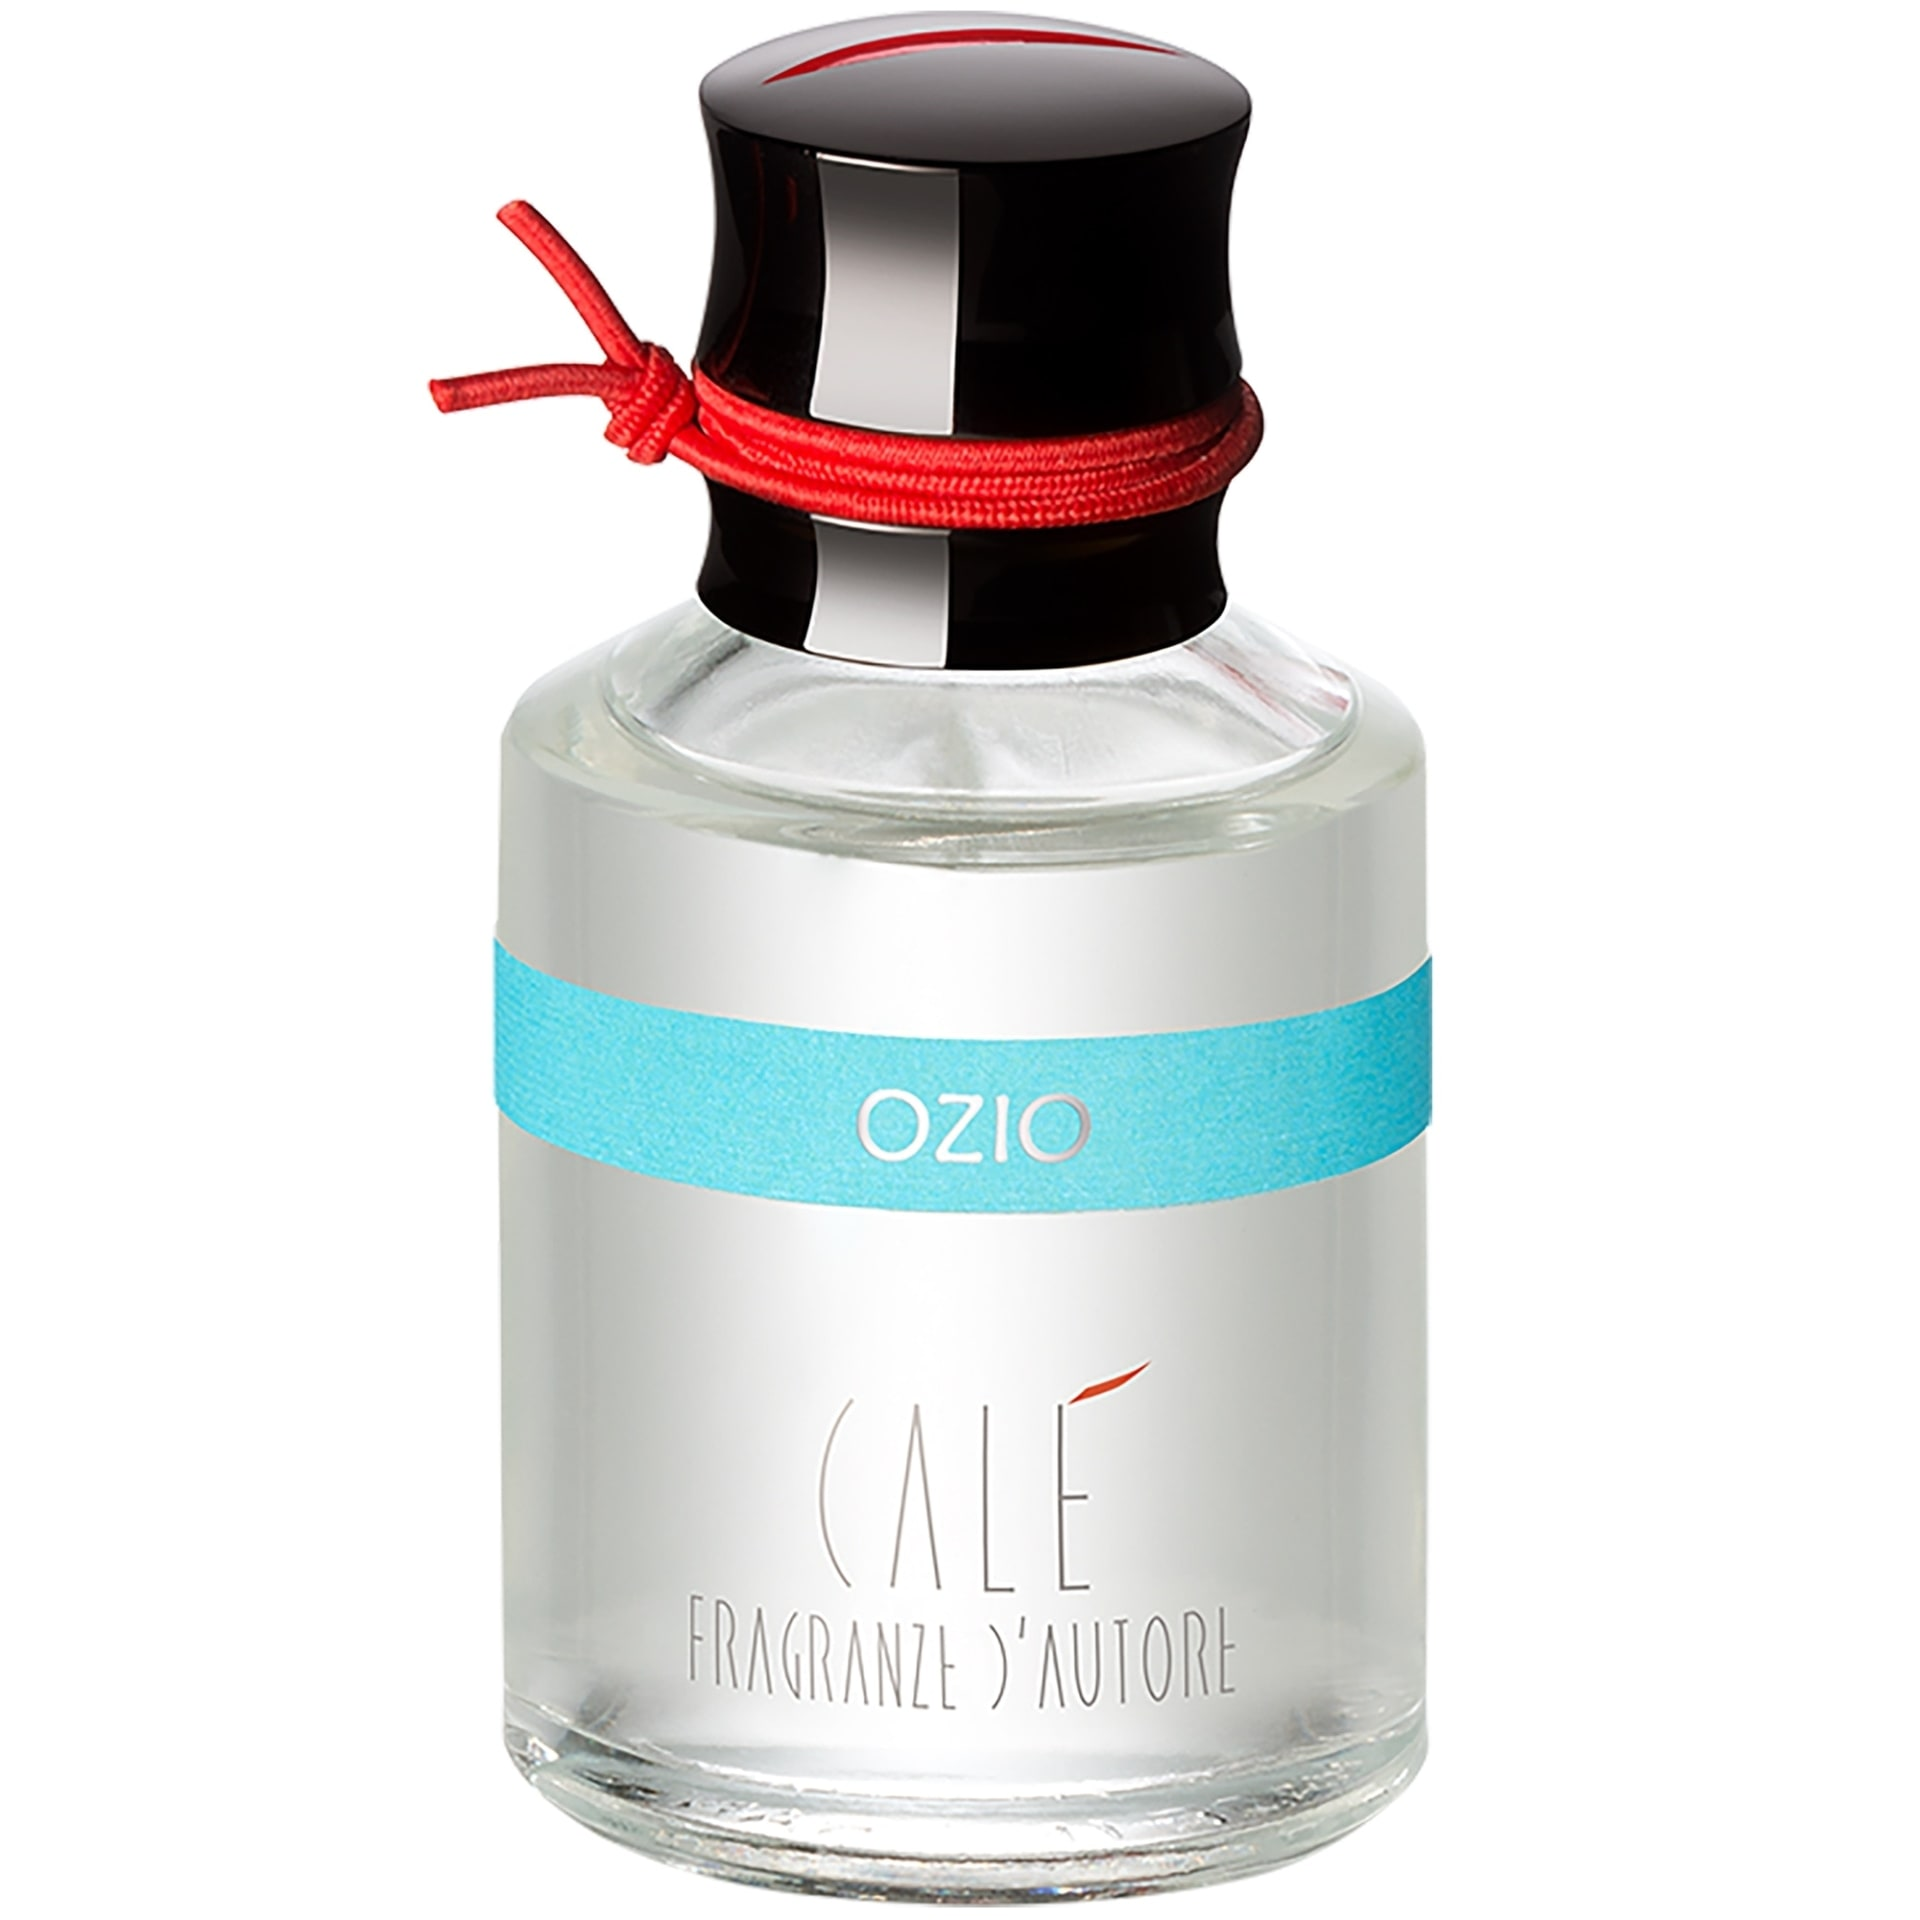 cale-fragranze-dautore-ozio